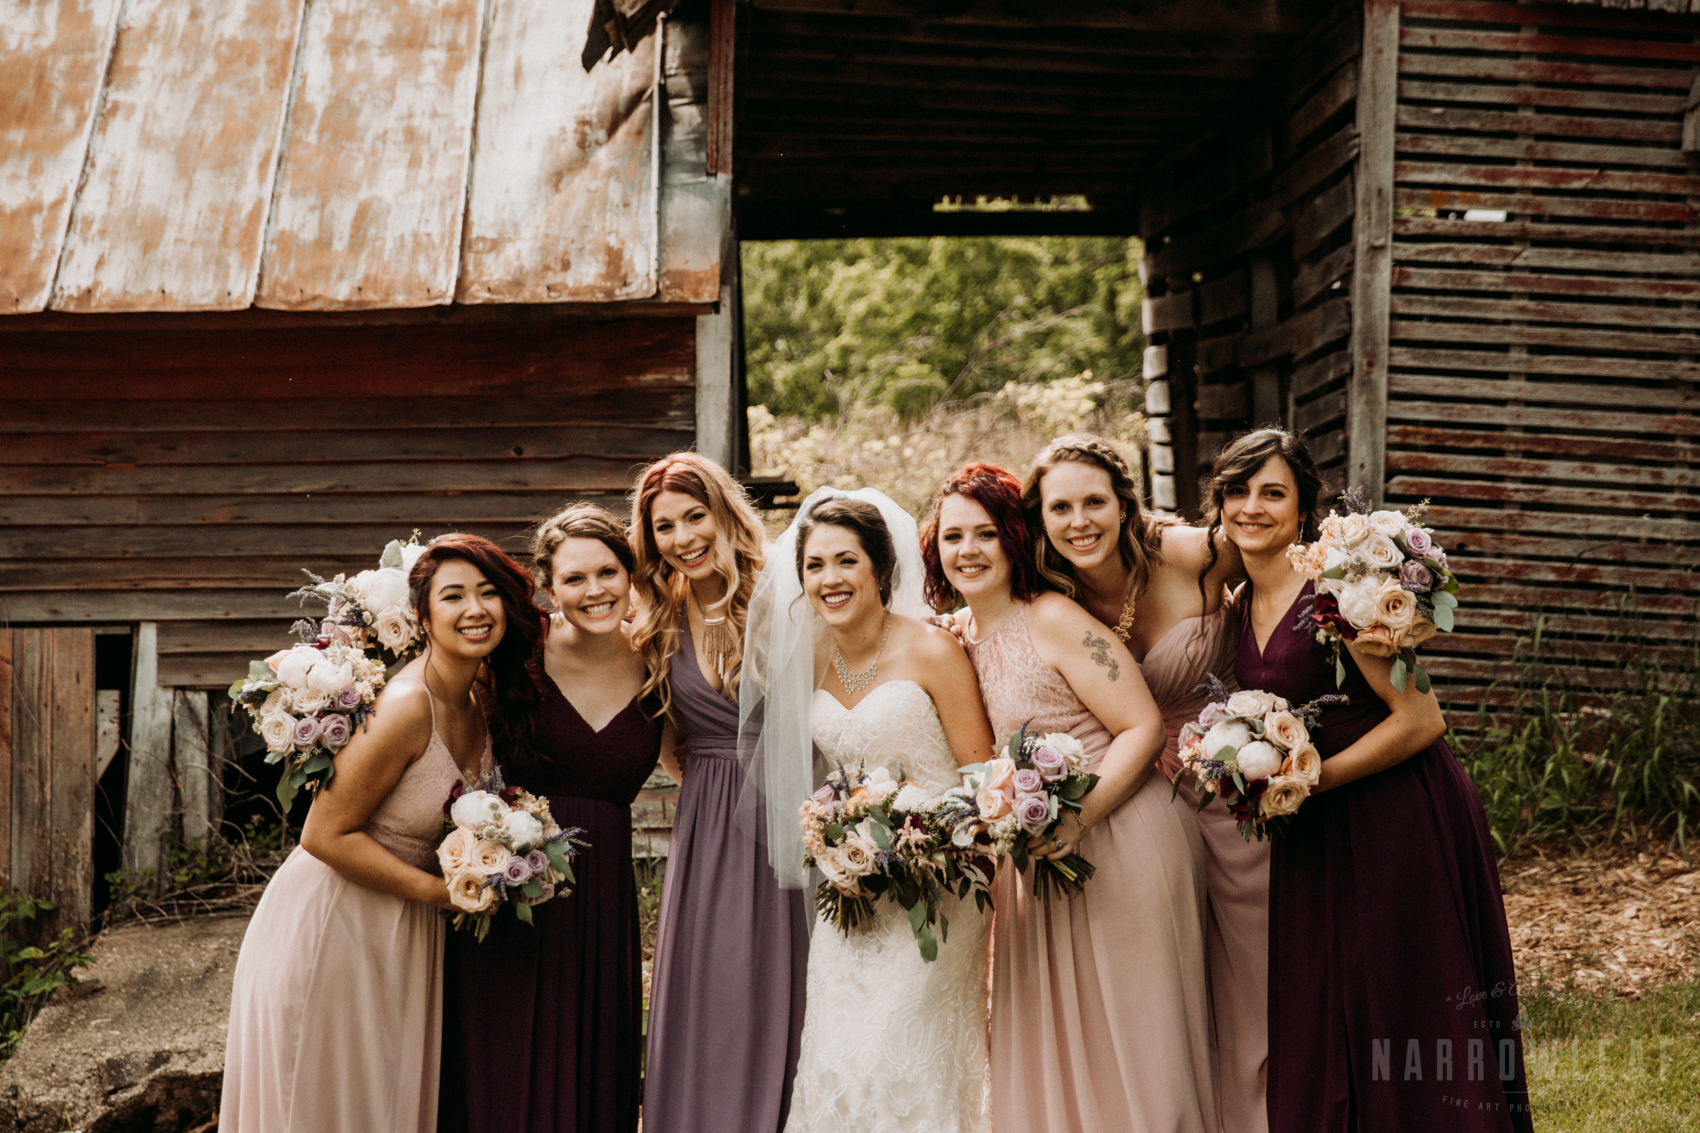 dusty-pinks-bridesmaid-dresses-the-hidden-meadow-and-barn-pepin-wi-4.jpg